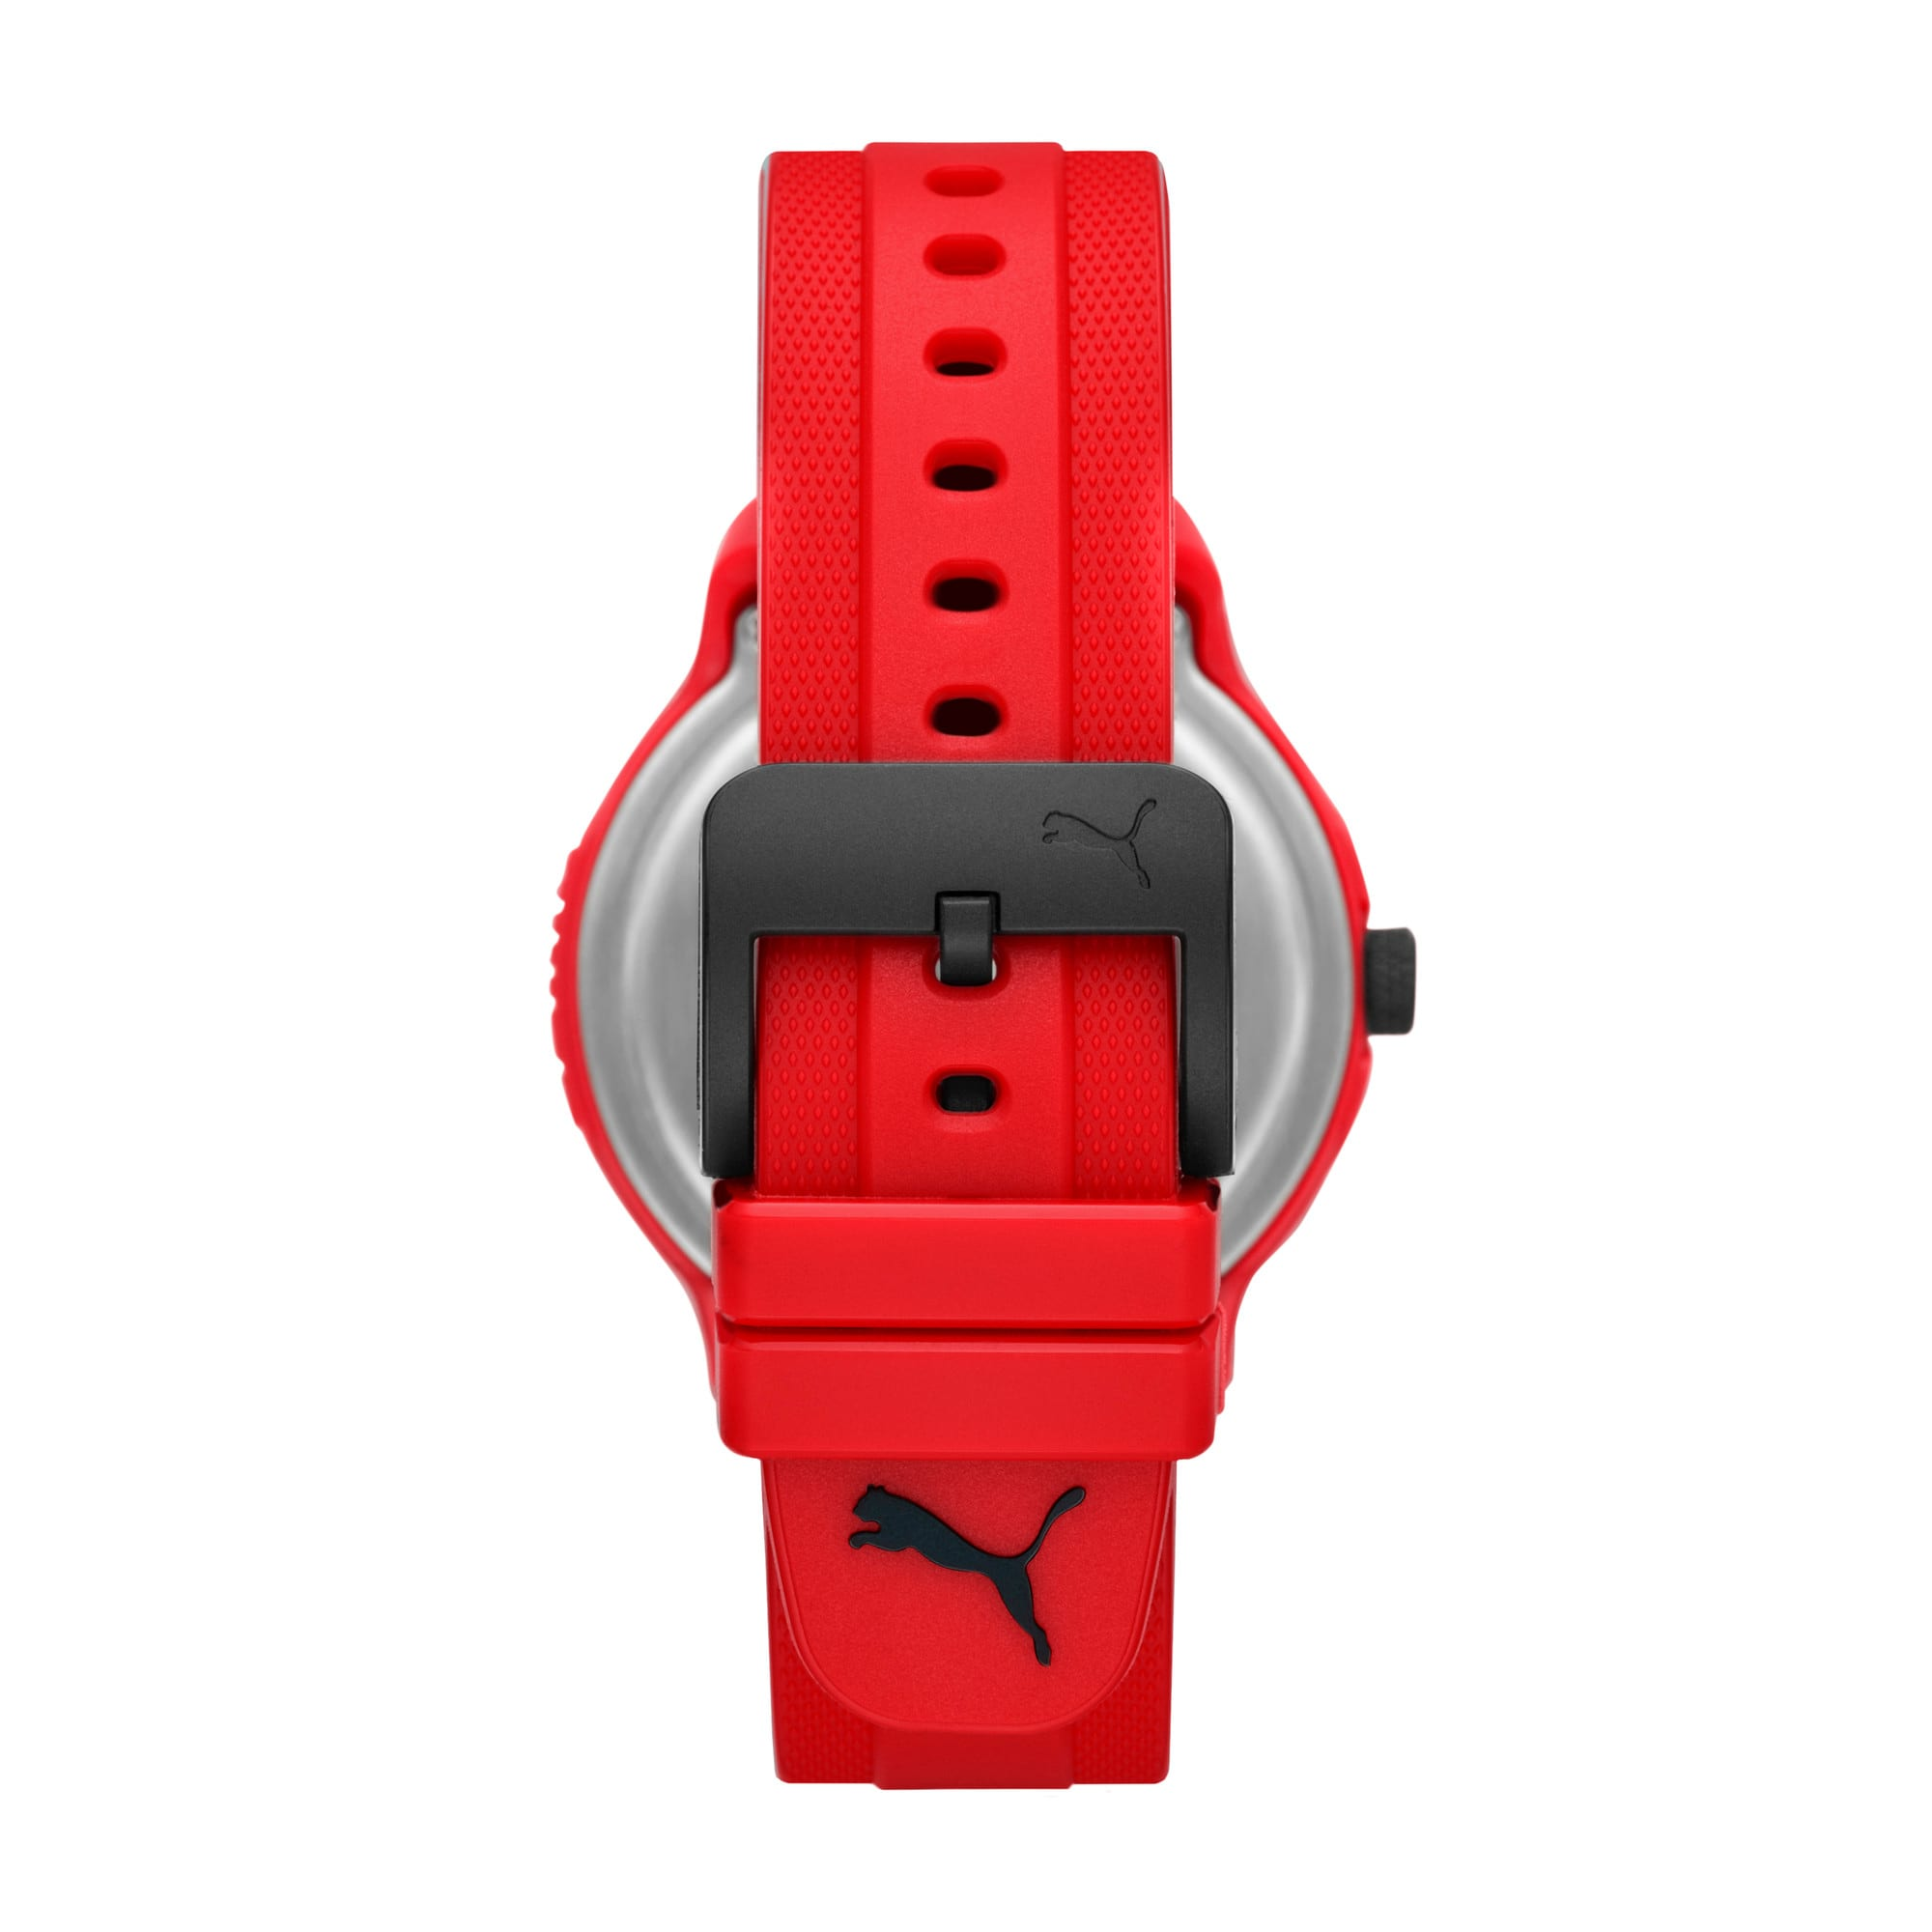 Thumbnail 3 of Reset v2 Watch, Red/Red, medium